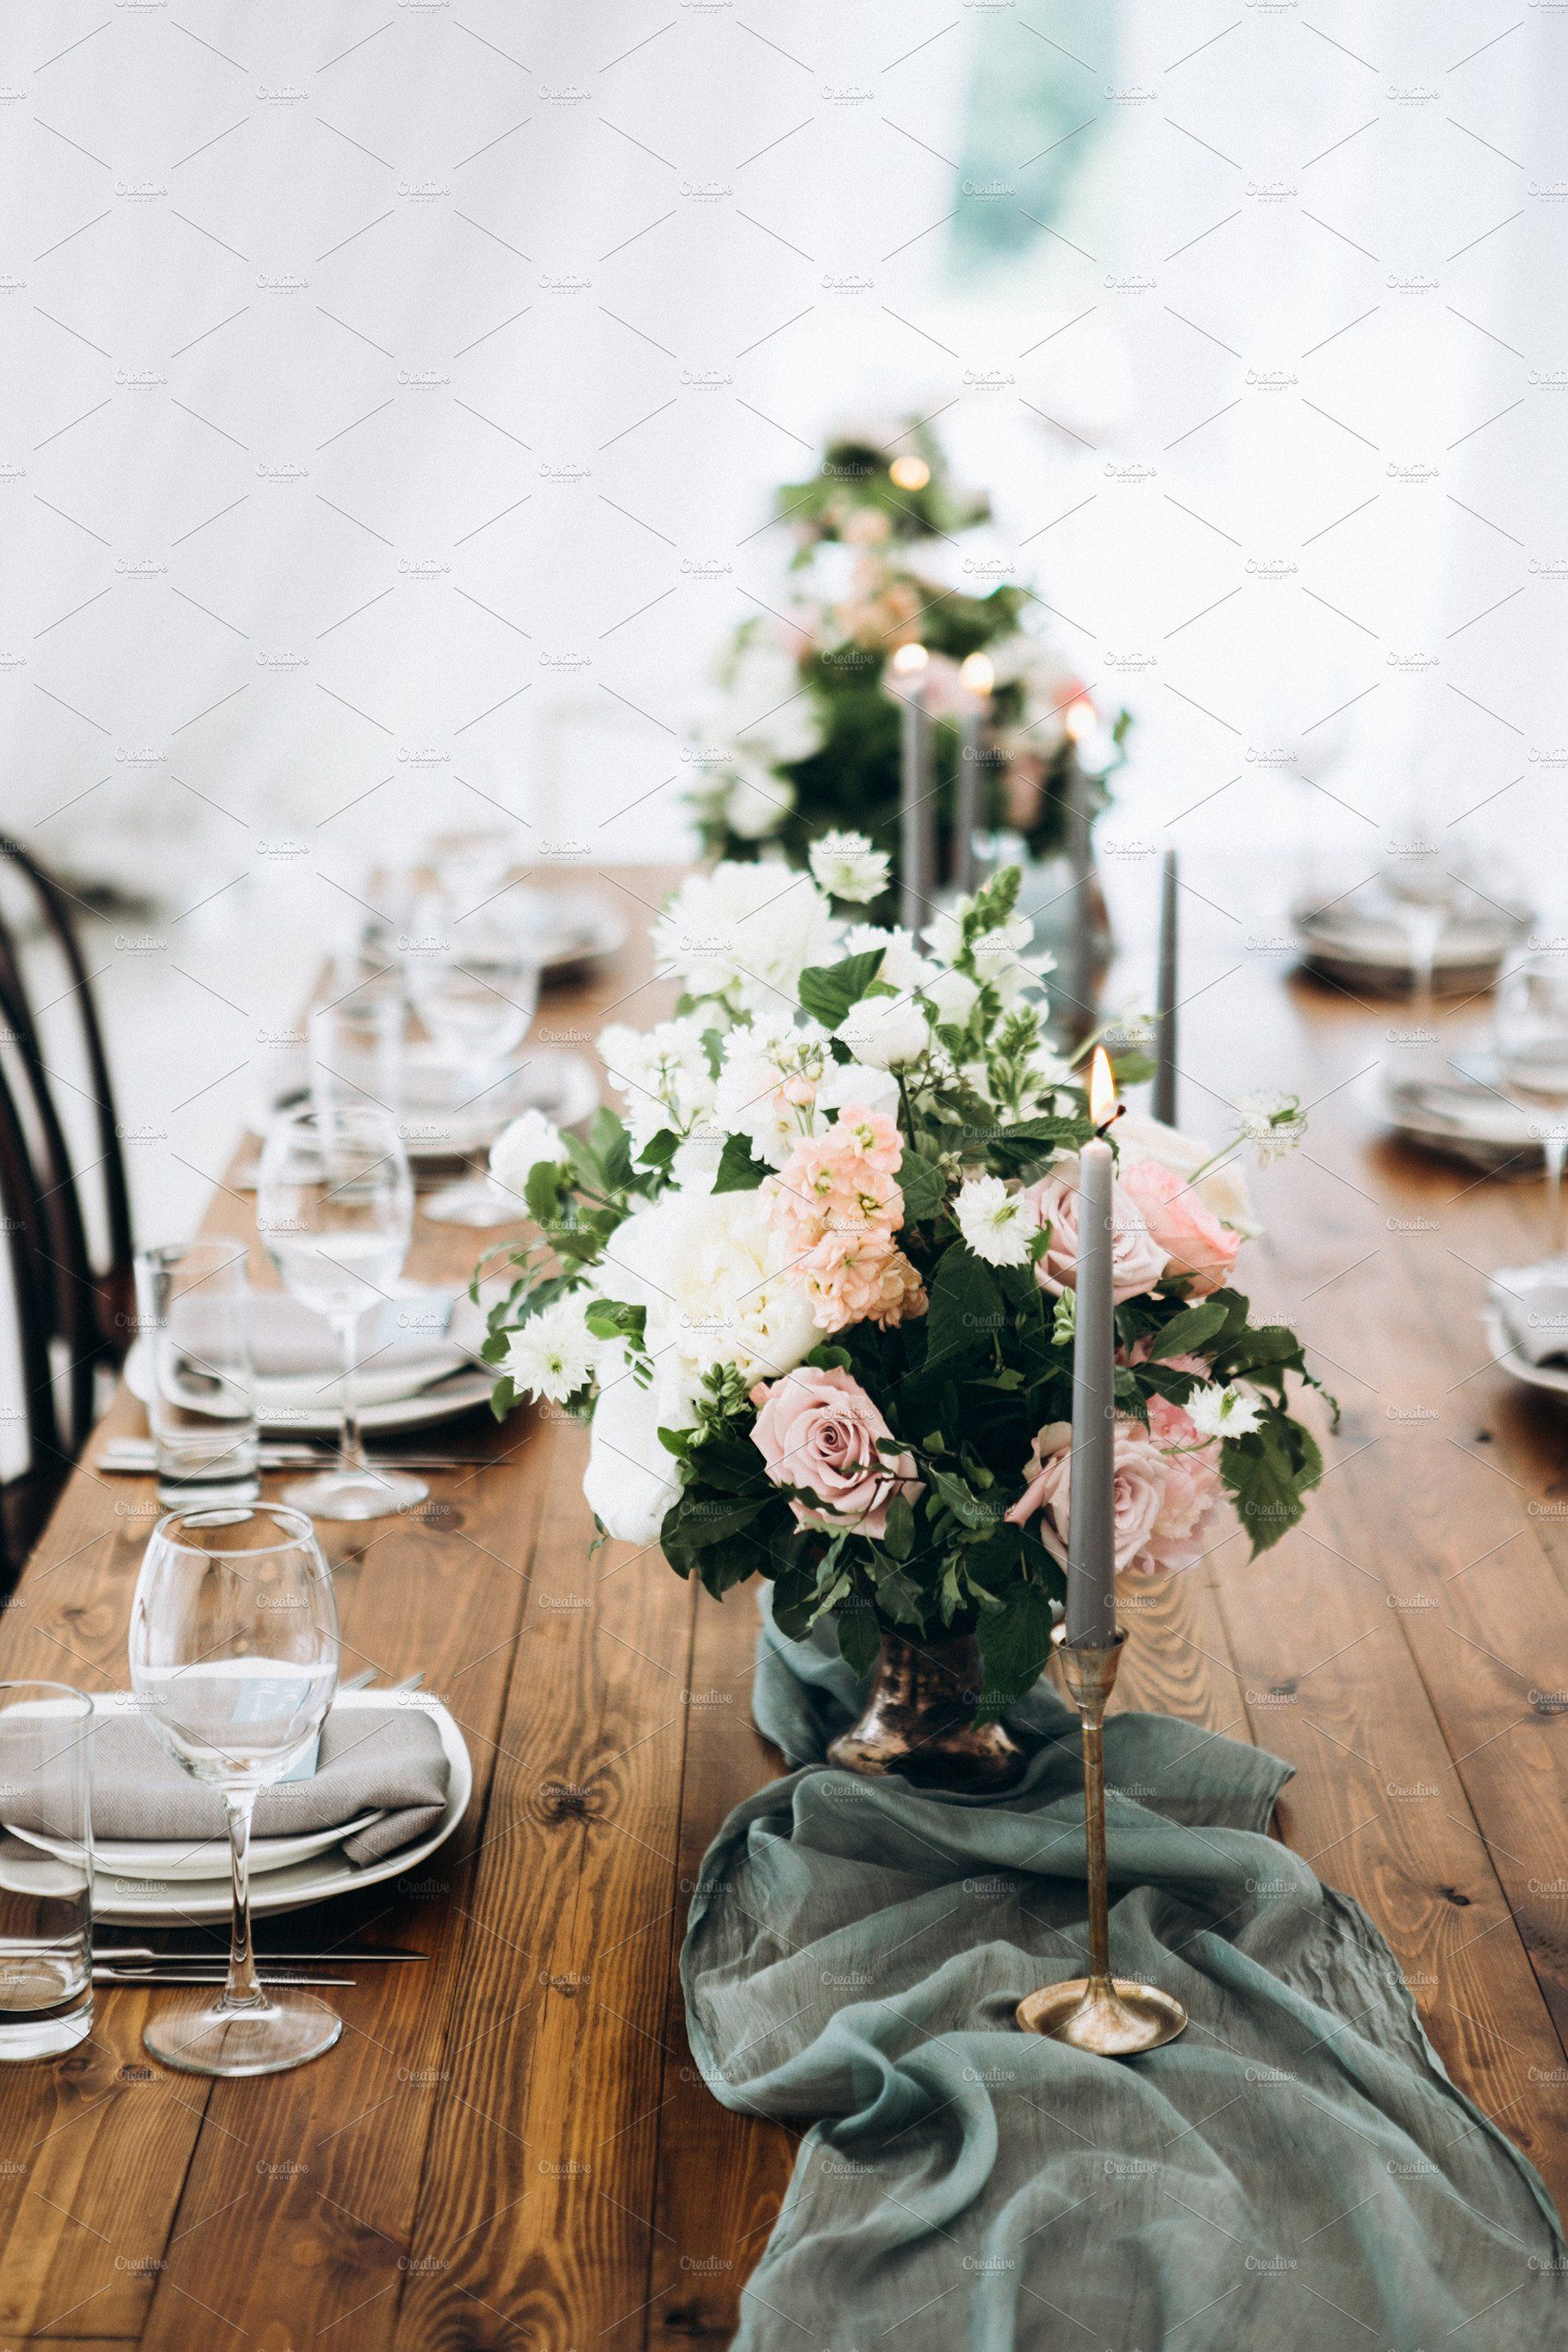 Rustic wedding table setting (With images) | Rustic wedding table ...